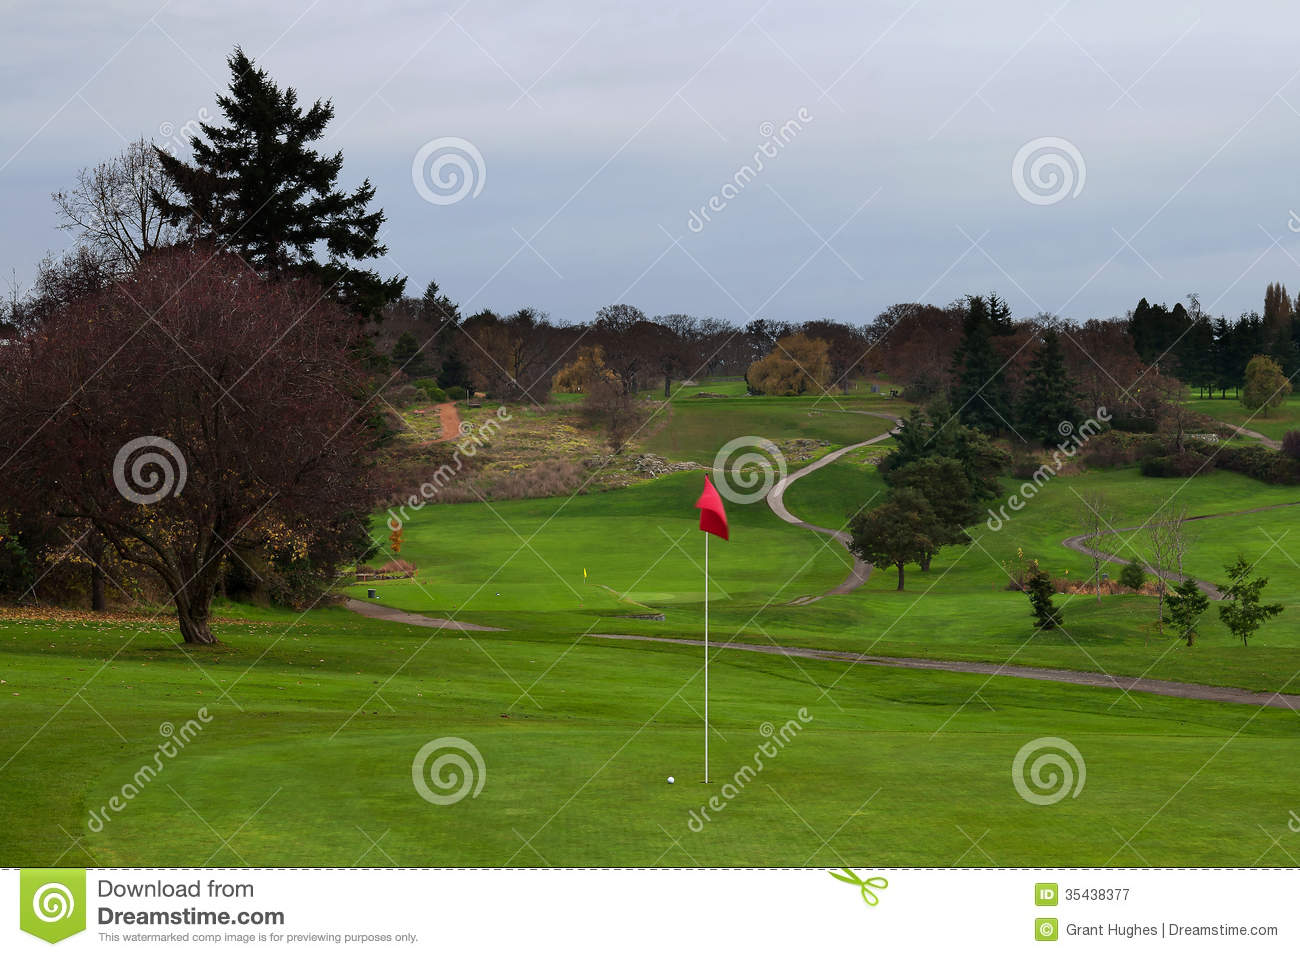 Golf Ball On Green With Distant Fairway And Curved Cart Path To Tee Curved Golf Cart on golf players, golf accessories, golf buggy, golf girls, golf tools, golf machine, golf hitting nets, golf card, golf words, golf games, golf trolley, golf handicap, golf cartoons,